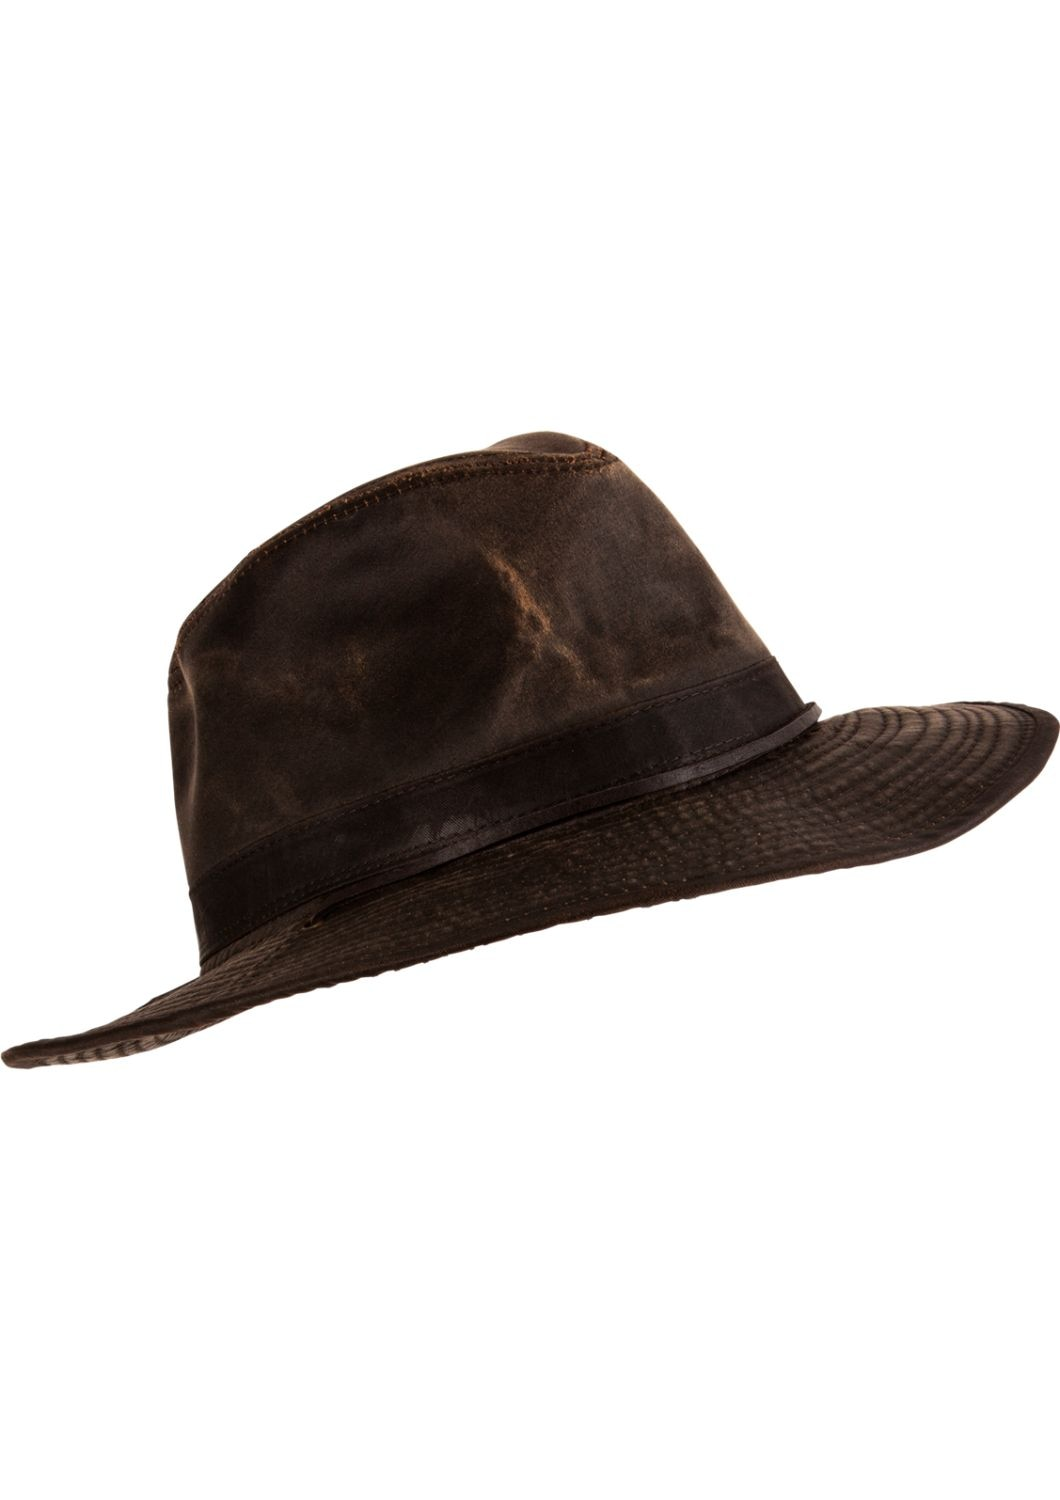 6eb971b01e32c5 Mens Outback-Style Hat | Weathered Broad Brim Hat